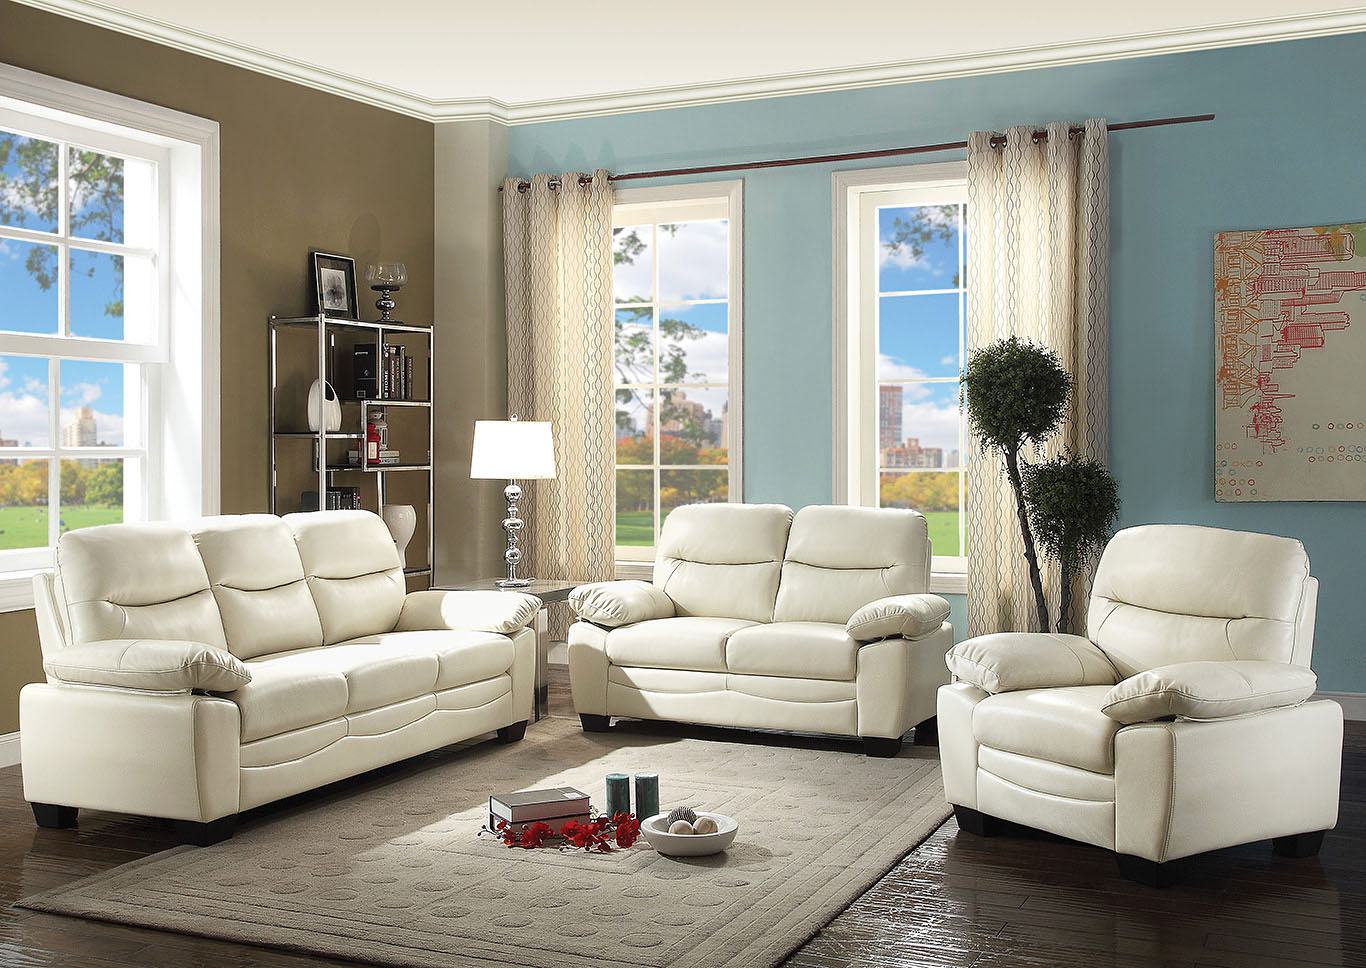 Torcon pearl faux leather sofaglory furniture